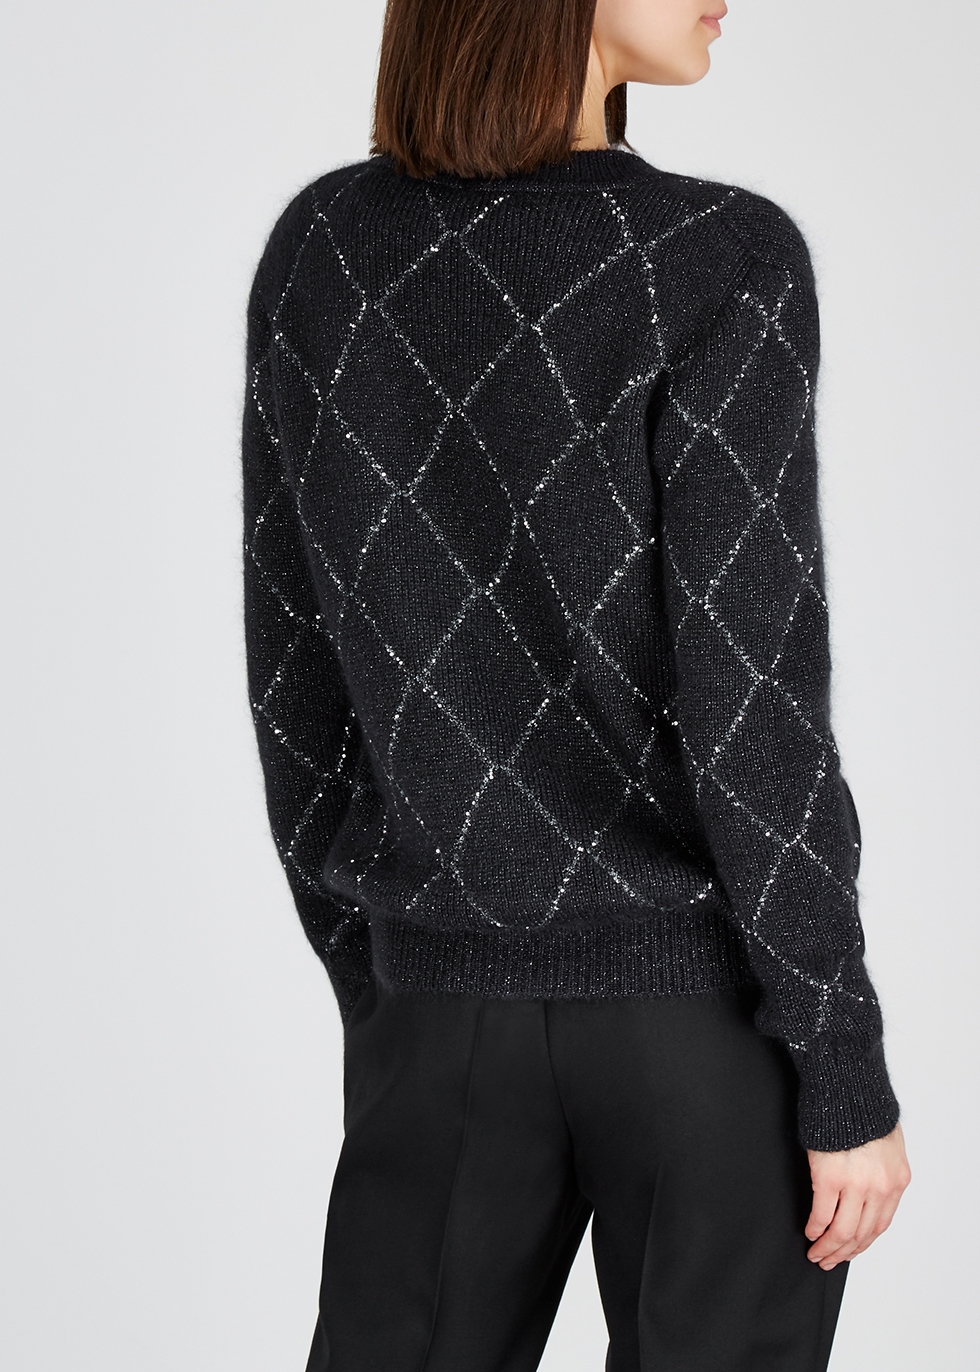 Charcoal embellished mohair-blend cardigan - Saint Laurent